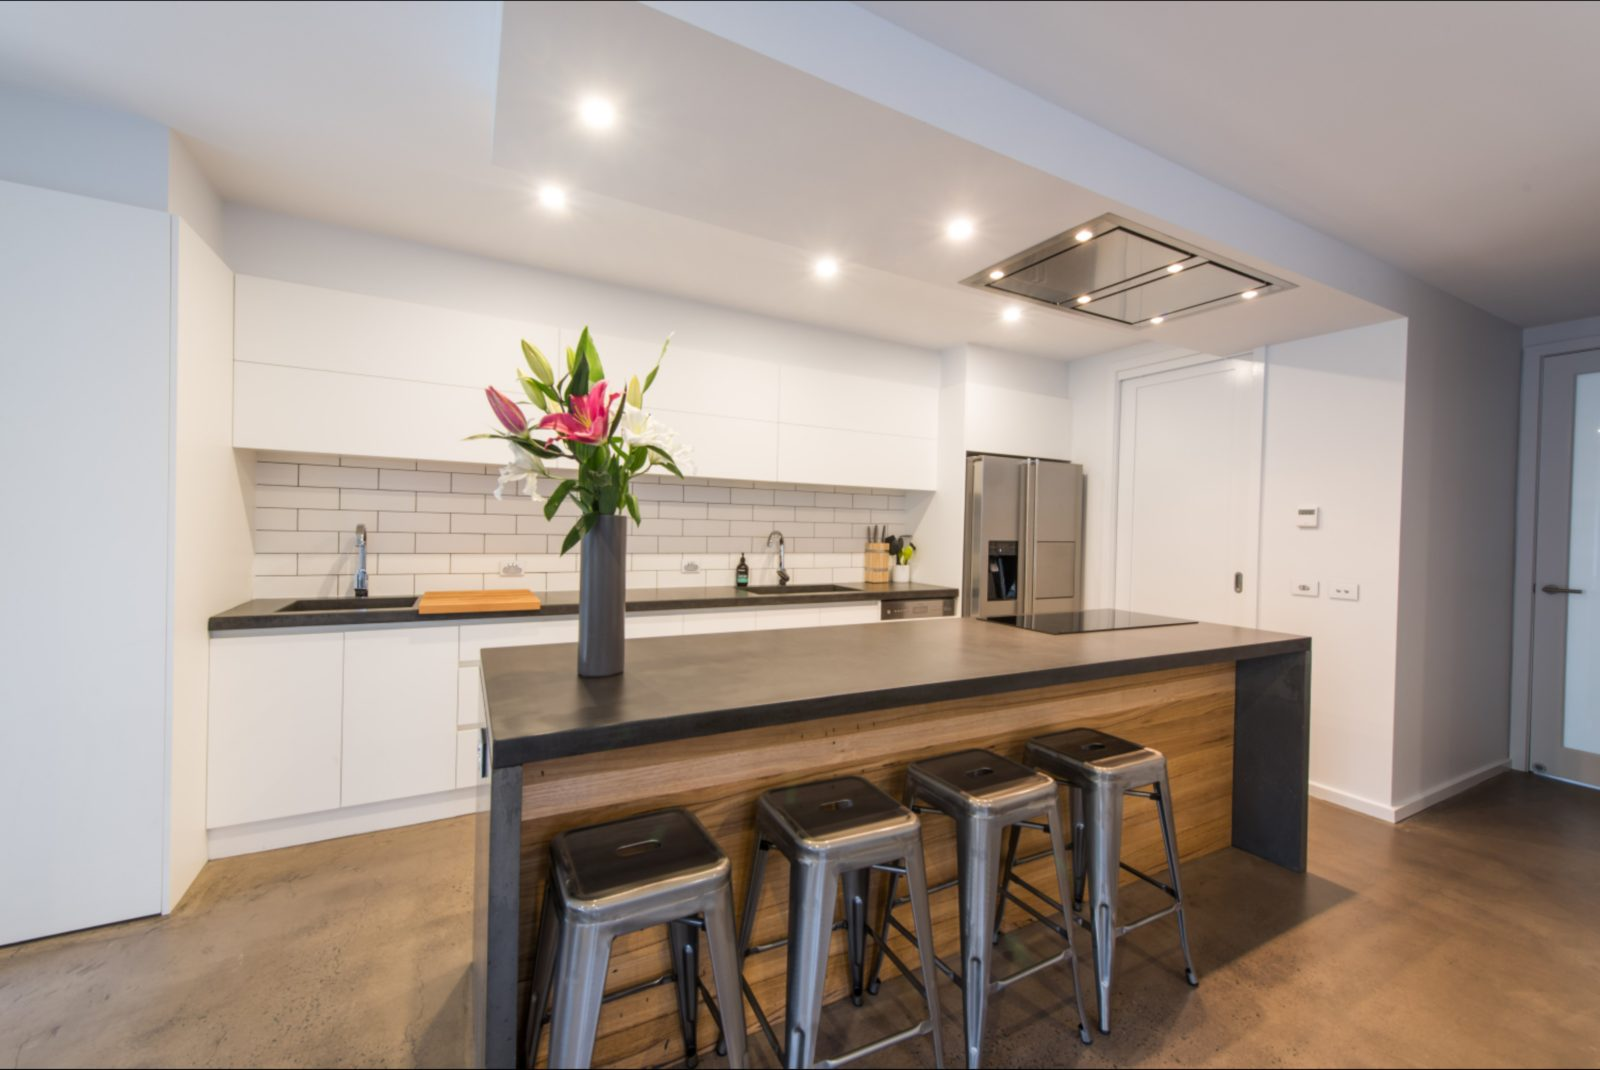 Fully equipped kitchen with custom made concrete island bench, four stools at breakfast bar.